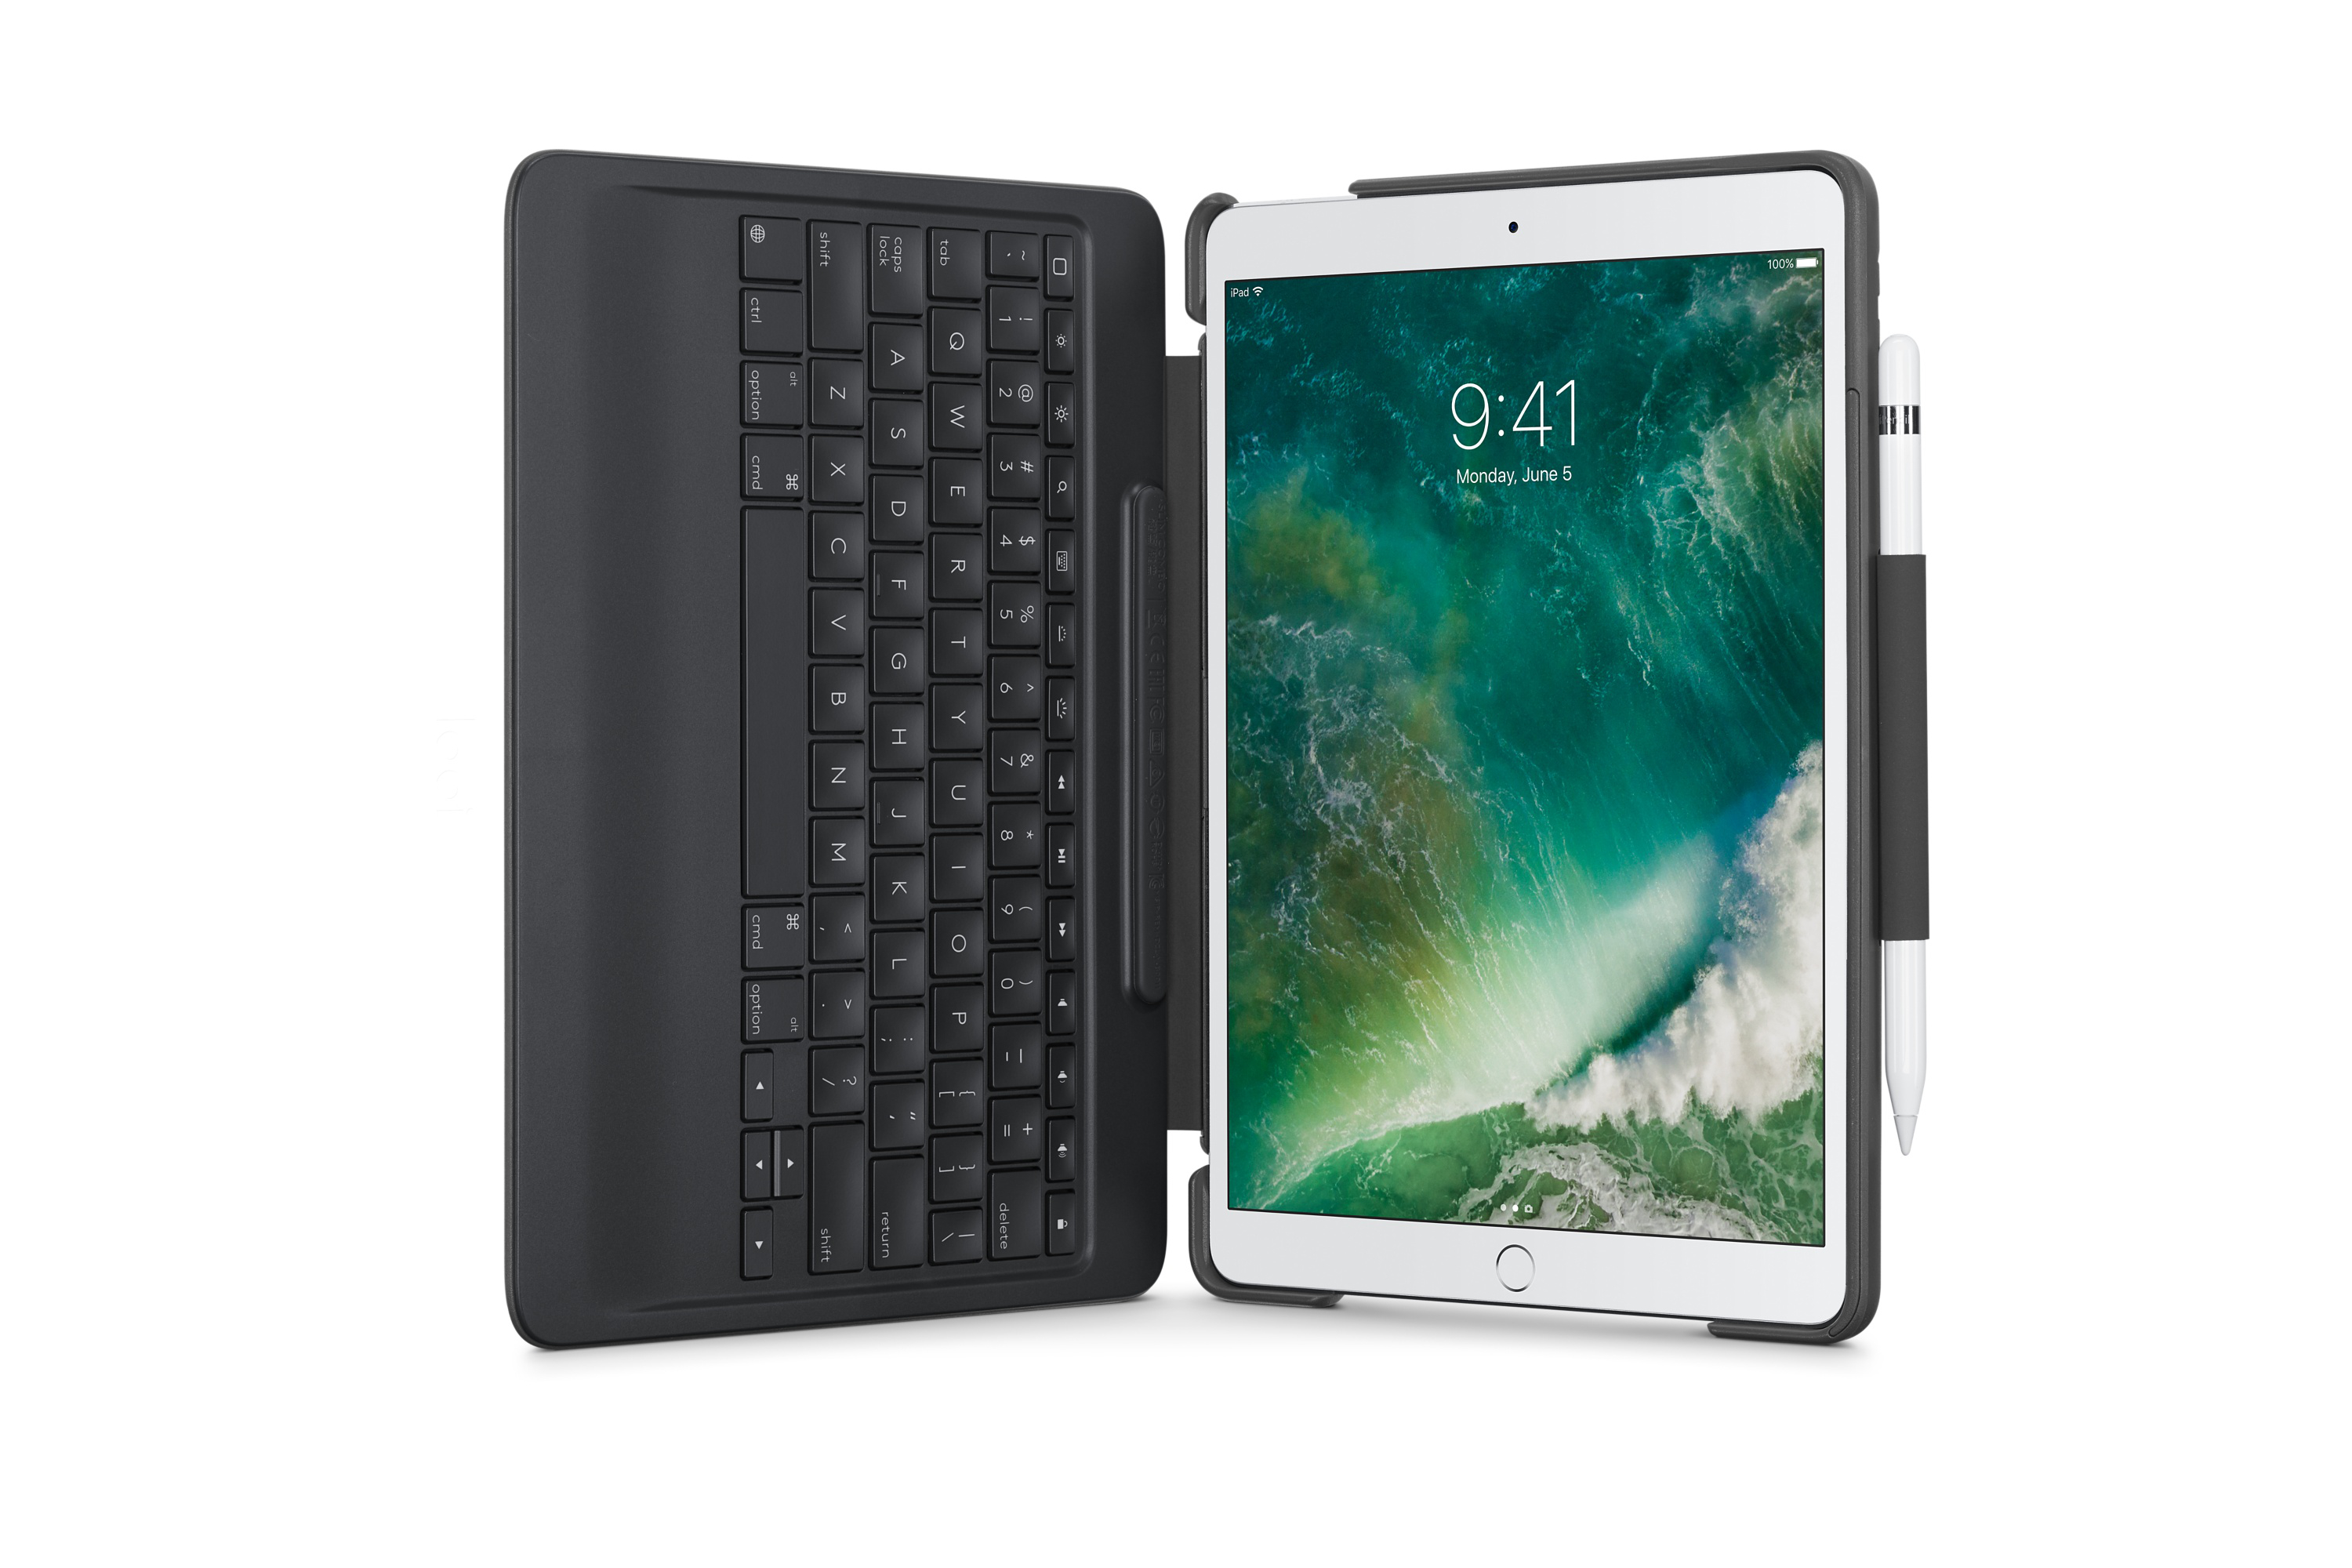 The Logitech Slim Combo is a Perfect Companion for the 10.5-Inch iPad Pro